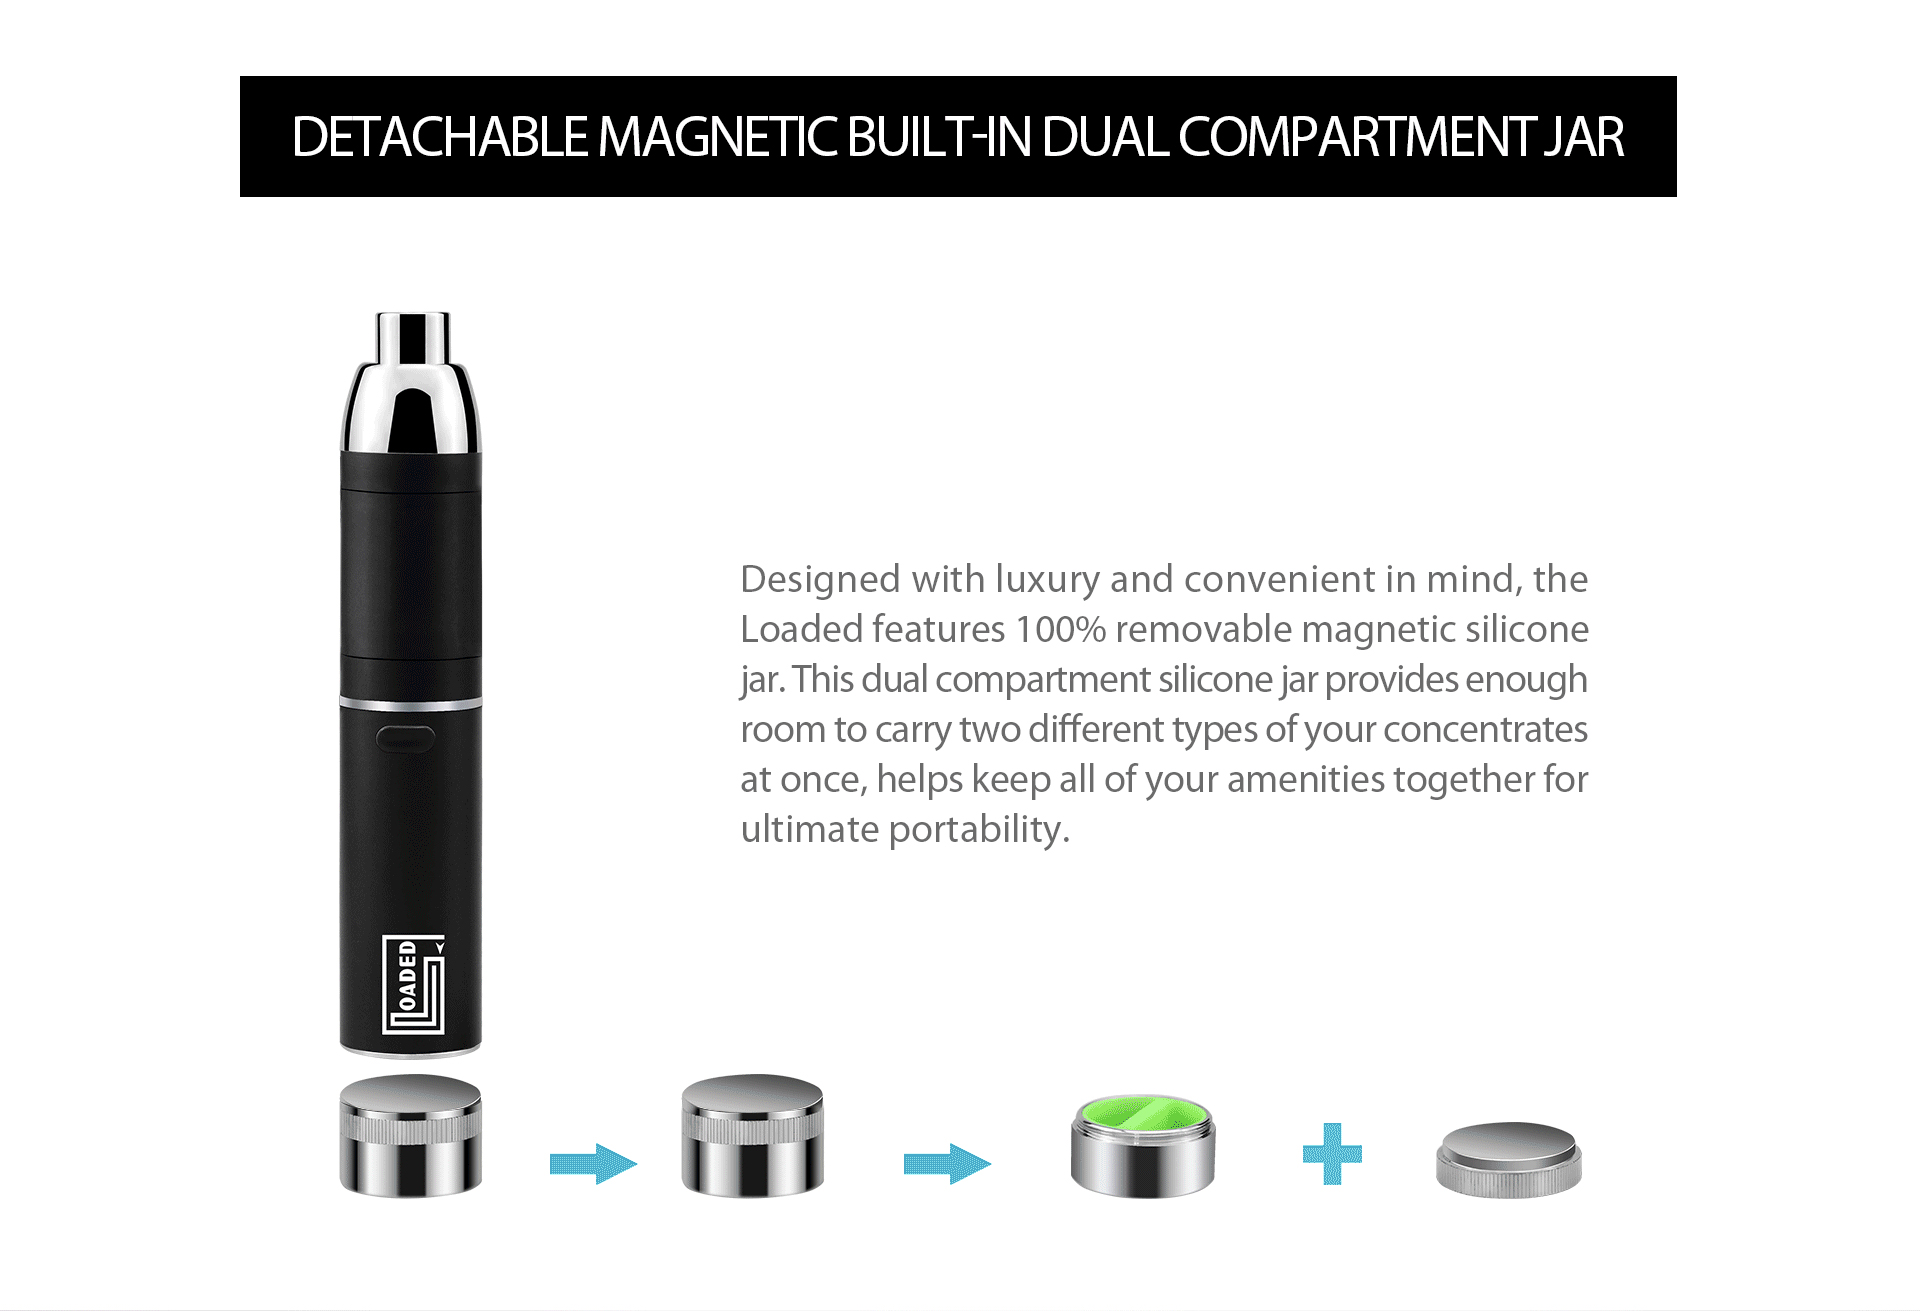 Yocan loaded features 100% removable magnetic silicone jar.